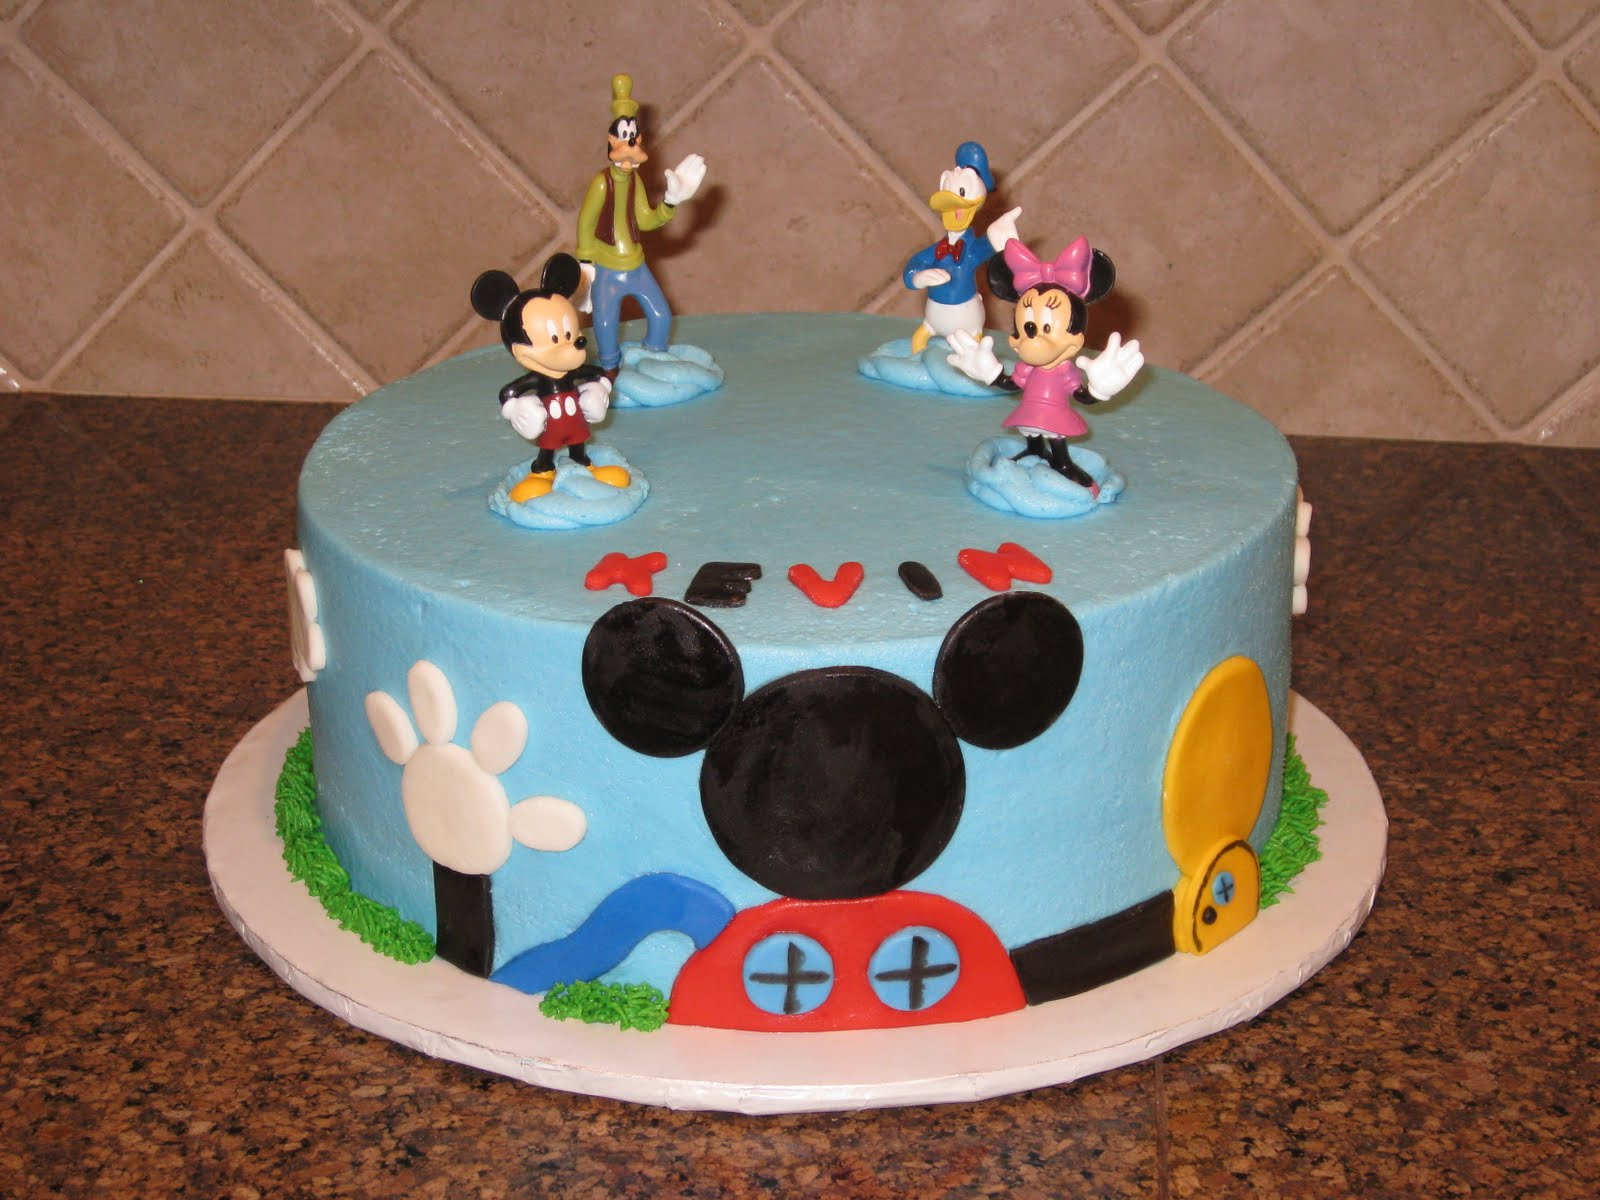 Mickey Mouse Clubhouse Cake Images : Shannon s Creative Cakes: Mickey Mouse Clubhouse Cake and ...